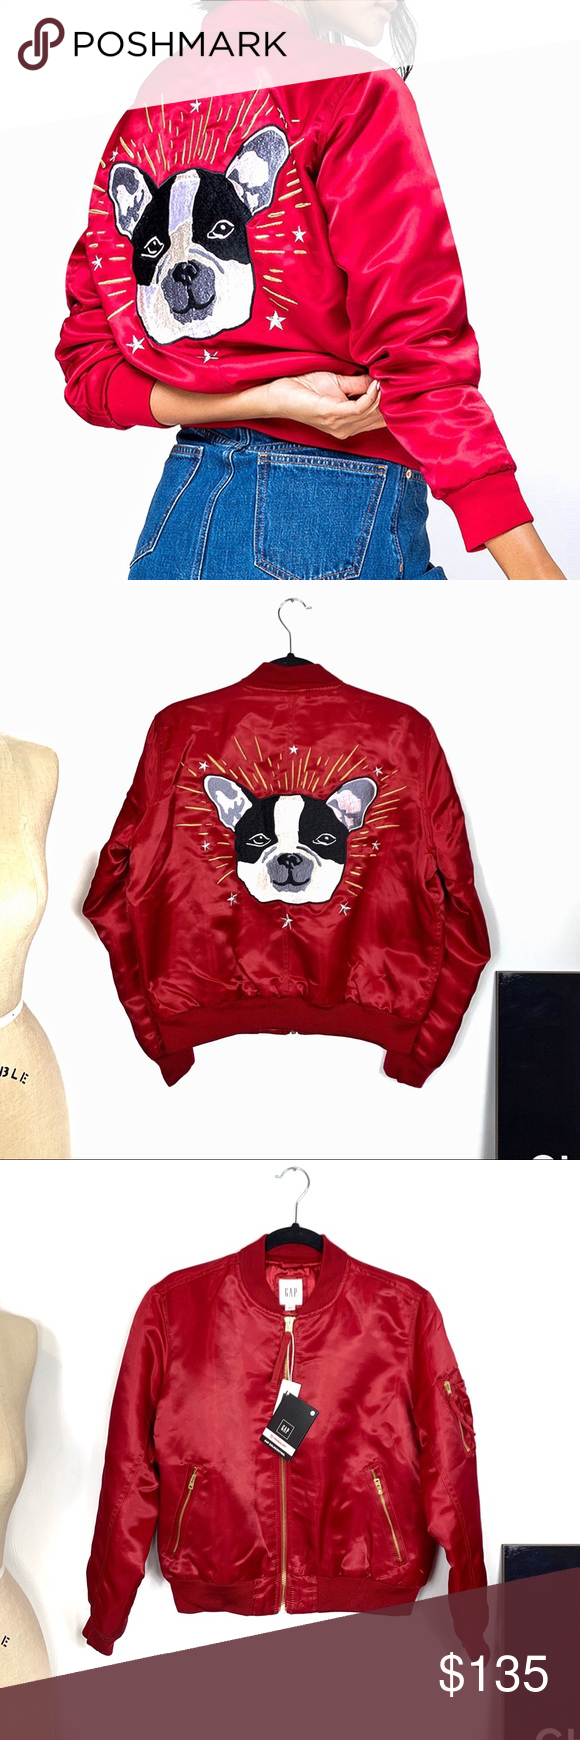 Nwt Gap Embroidered Dog Red Satin Bomber Jacket Gap Women S Embroidered Satin Bomber Jacket Smooth Satin Weave Satin Bomber Jacket Clothes Design Bomber Jacket [ 1740 x 580 Pixel ]